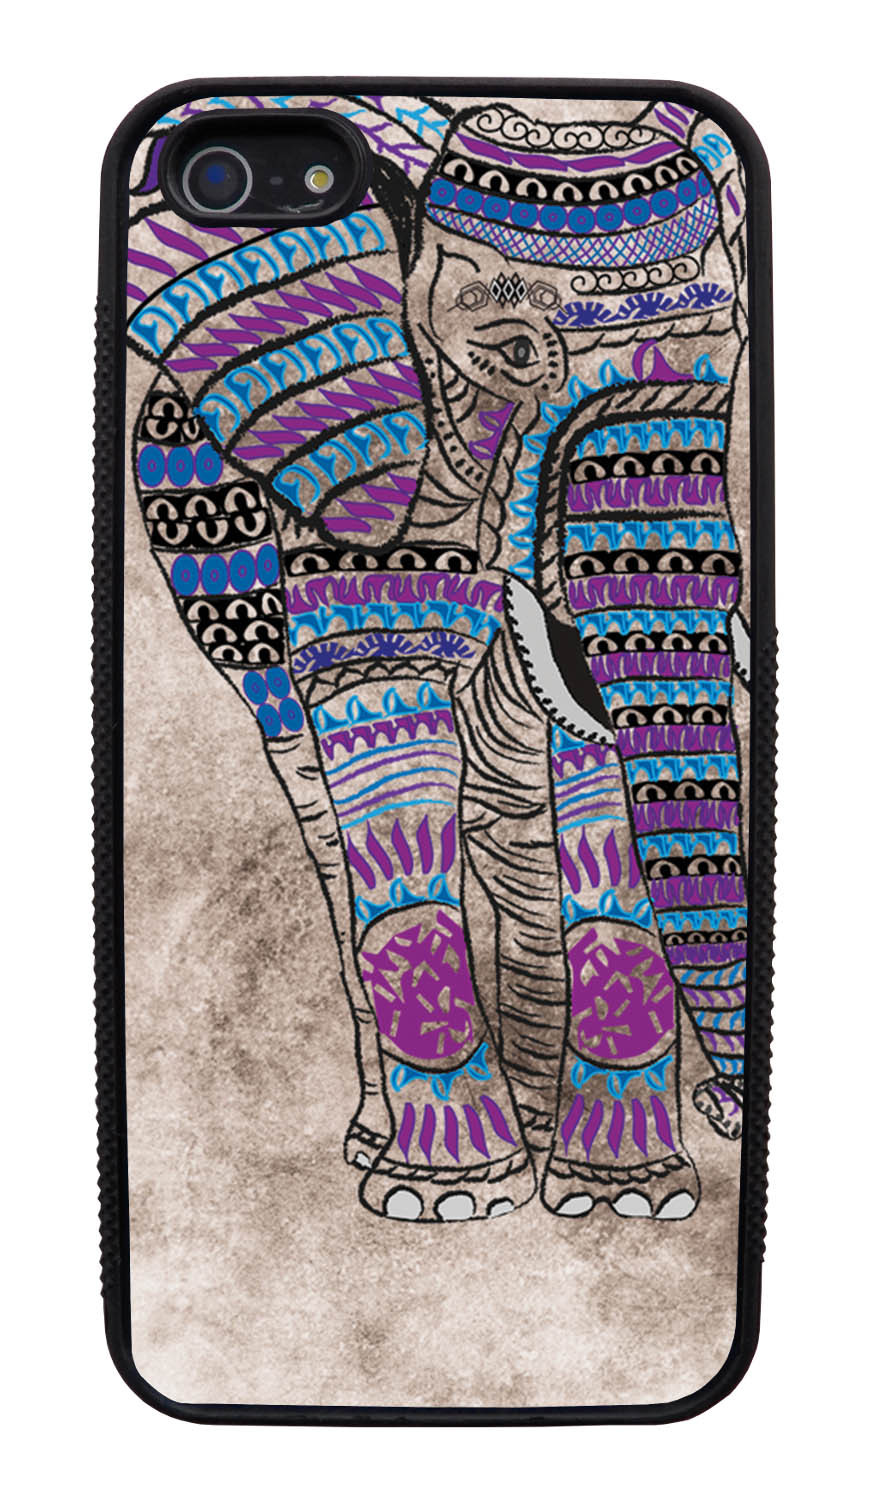 Apple iPhone 5 / 5S Aztec Case - Purple and Blue Charcoal Drawing - Tribal Elephant - Black Slim Rubber Case